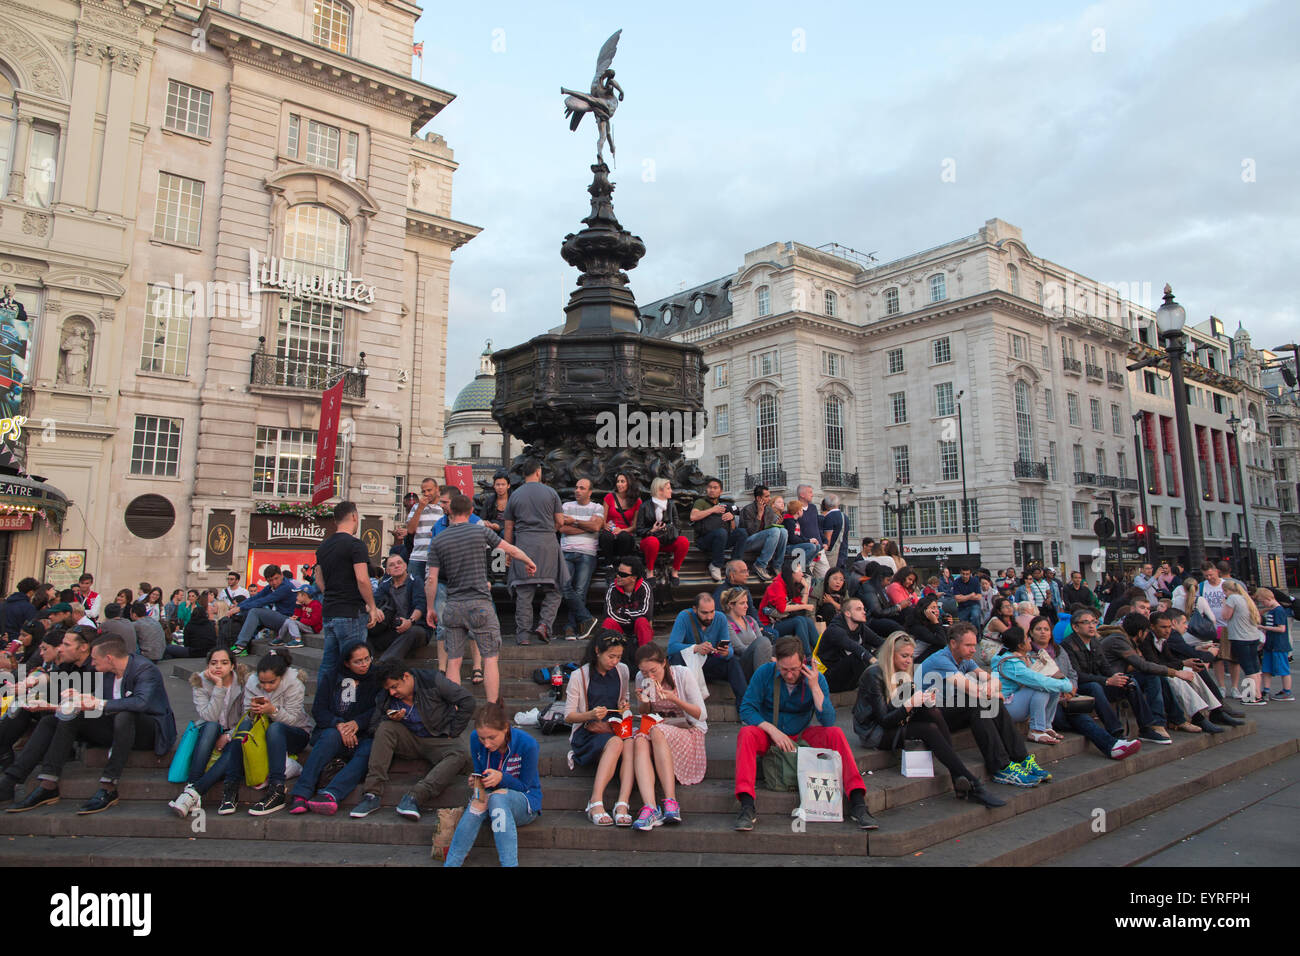 Tourists sitting on the steps of the Shaftesbury Memorial Fountain and statue of Eros, Piccadilly Circus, London, - Stock Image